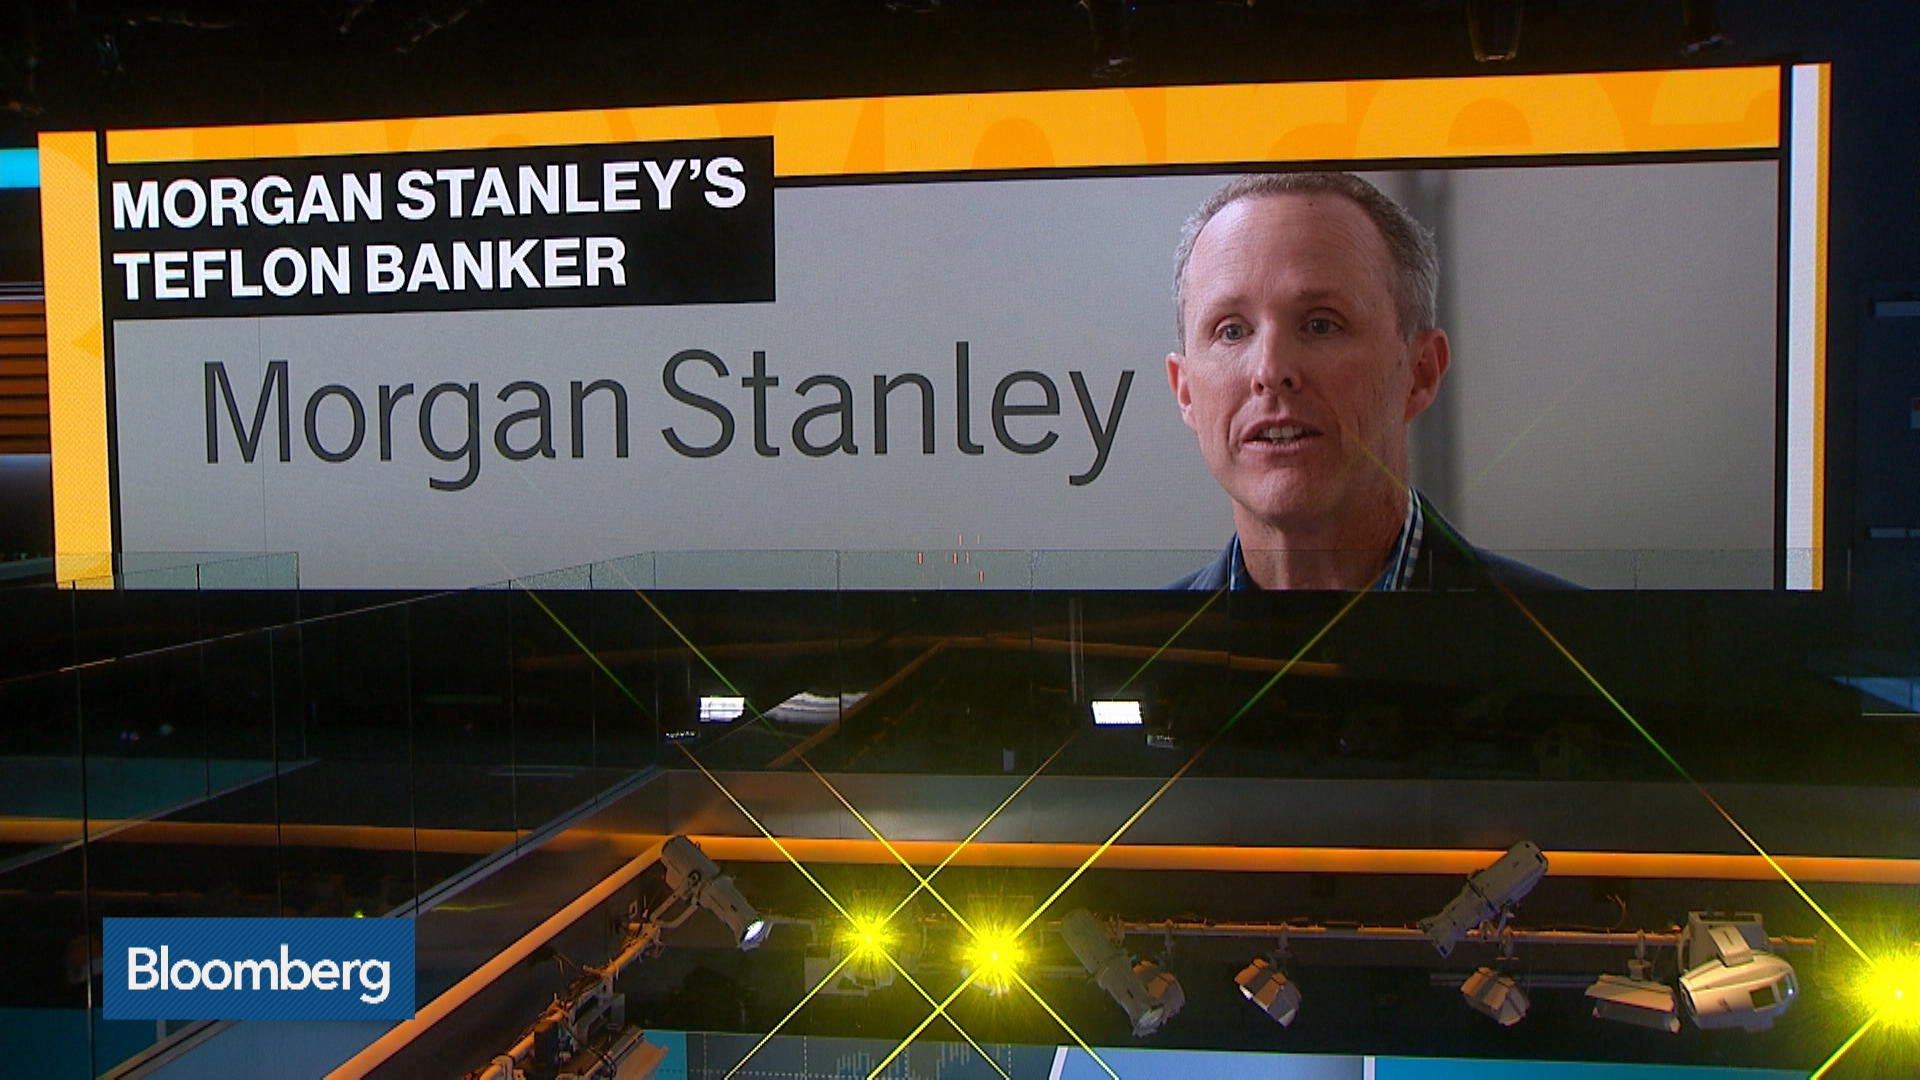 Morgan Stanley's Teflon Banker Chases Next Deal After Uber - Bloomberg